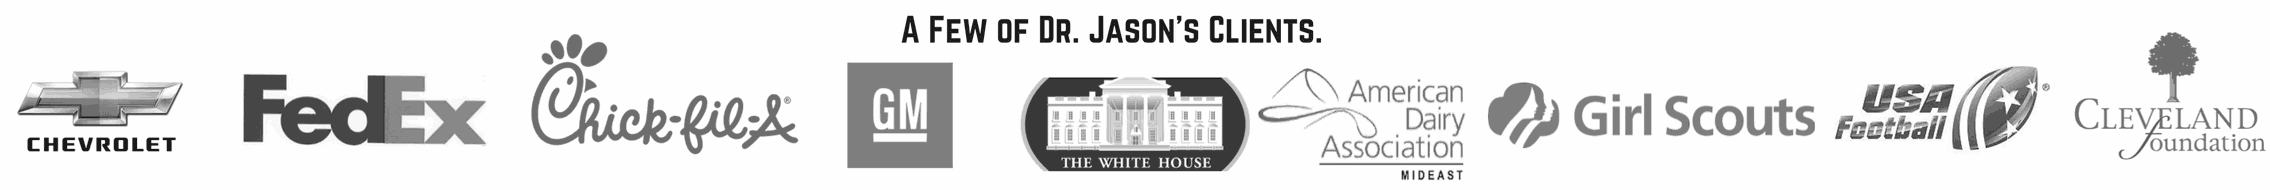 Dr. Jason Carthen: Clients Banner